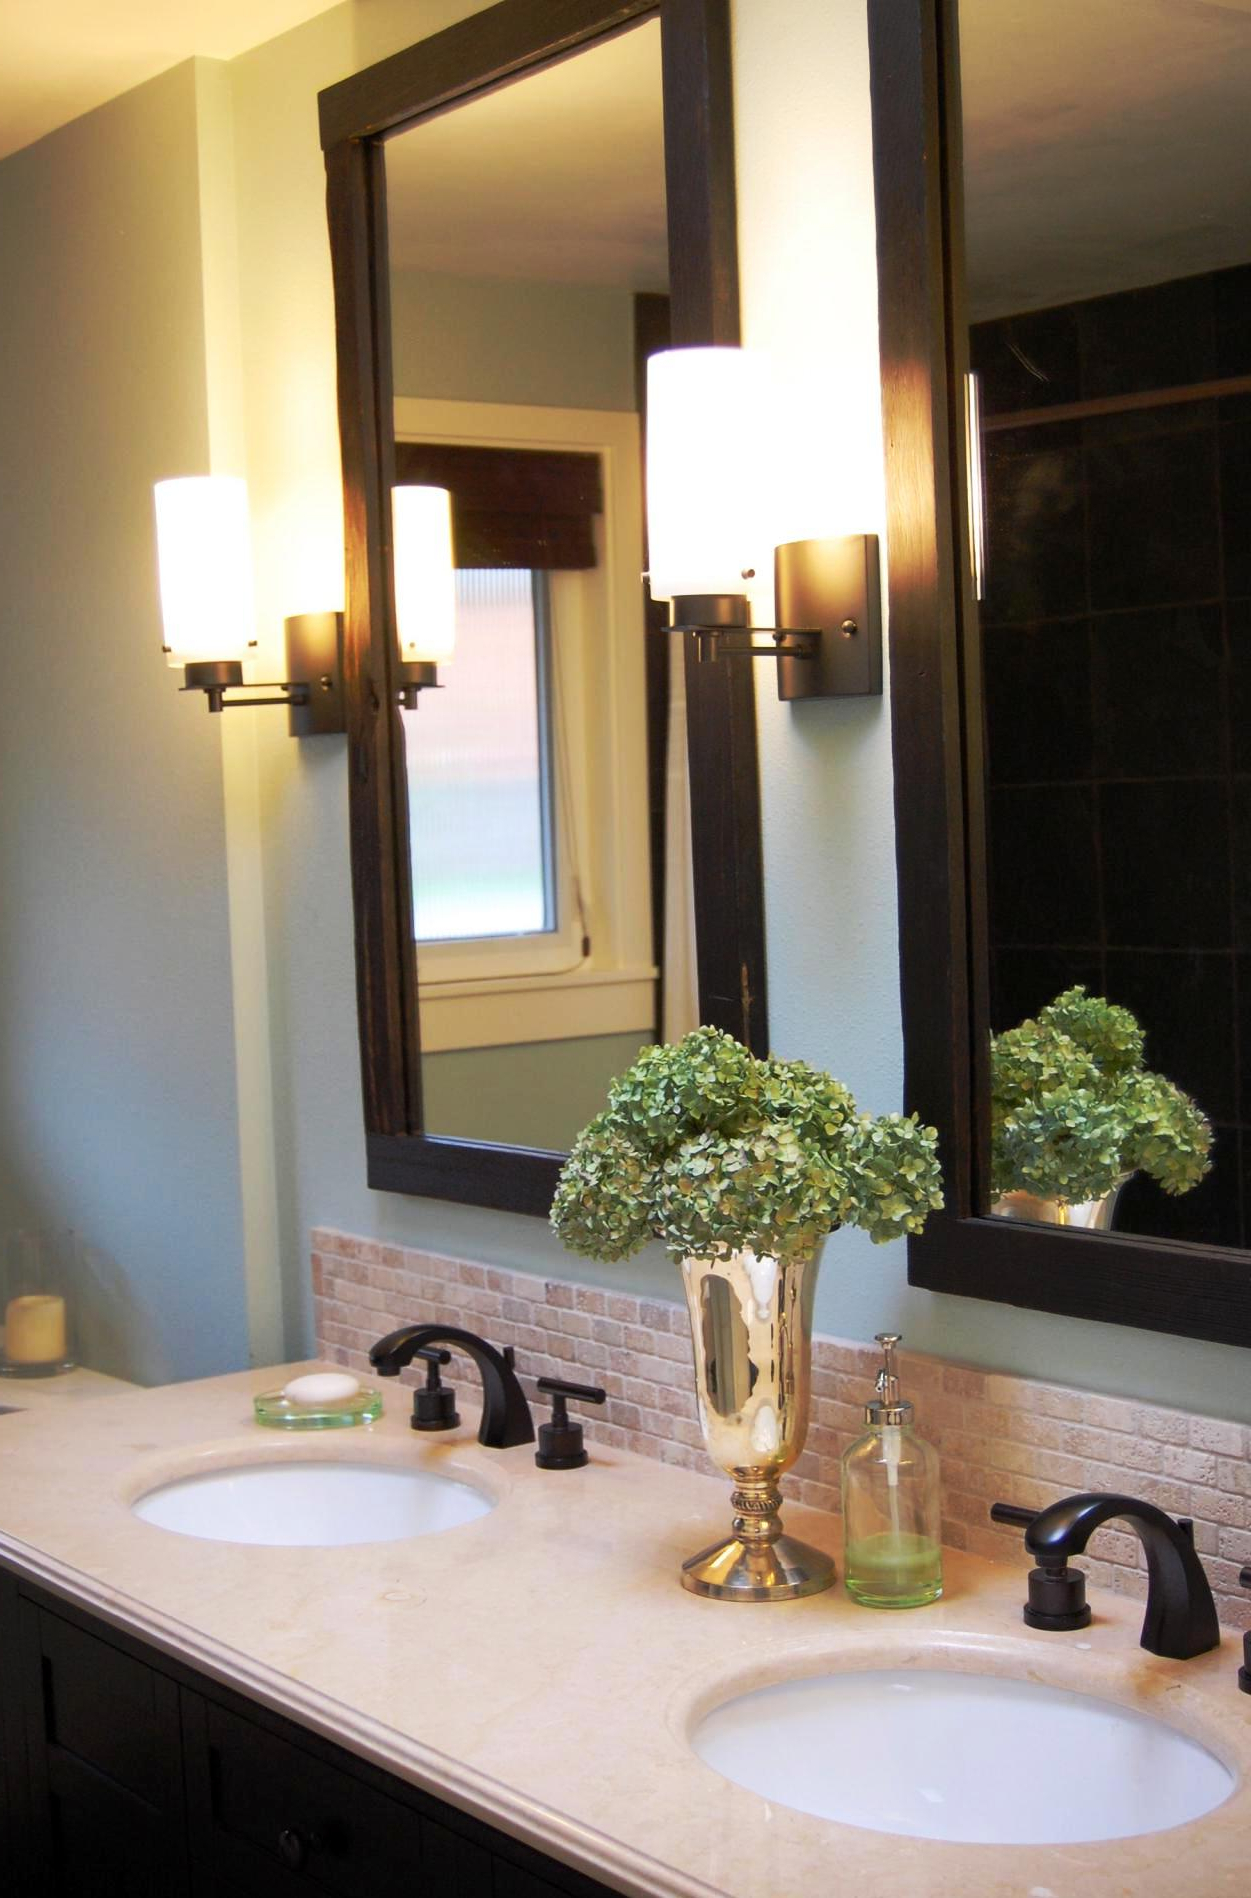 Frames For Bathroom Wall Mirrors Inside Favorite Frame Bathroom Wall Mirror To Show Beautiful Accent In Bathroom (View 6 of 20)